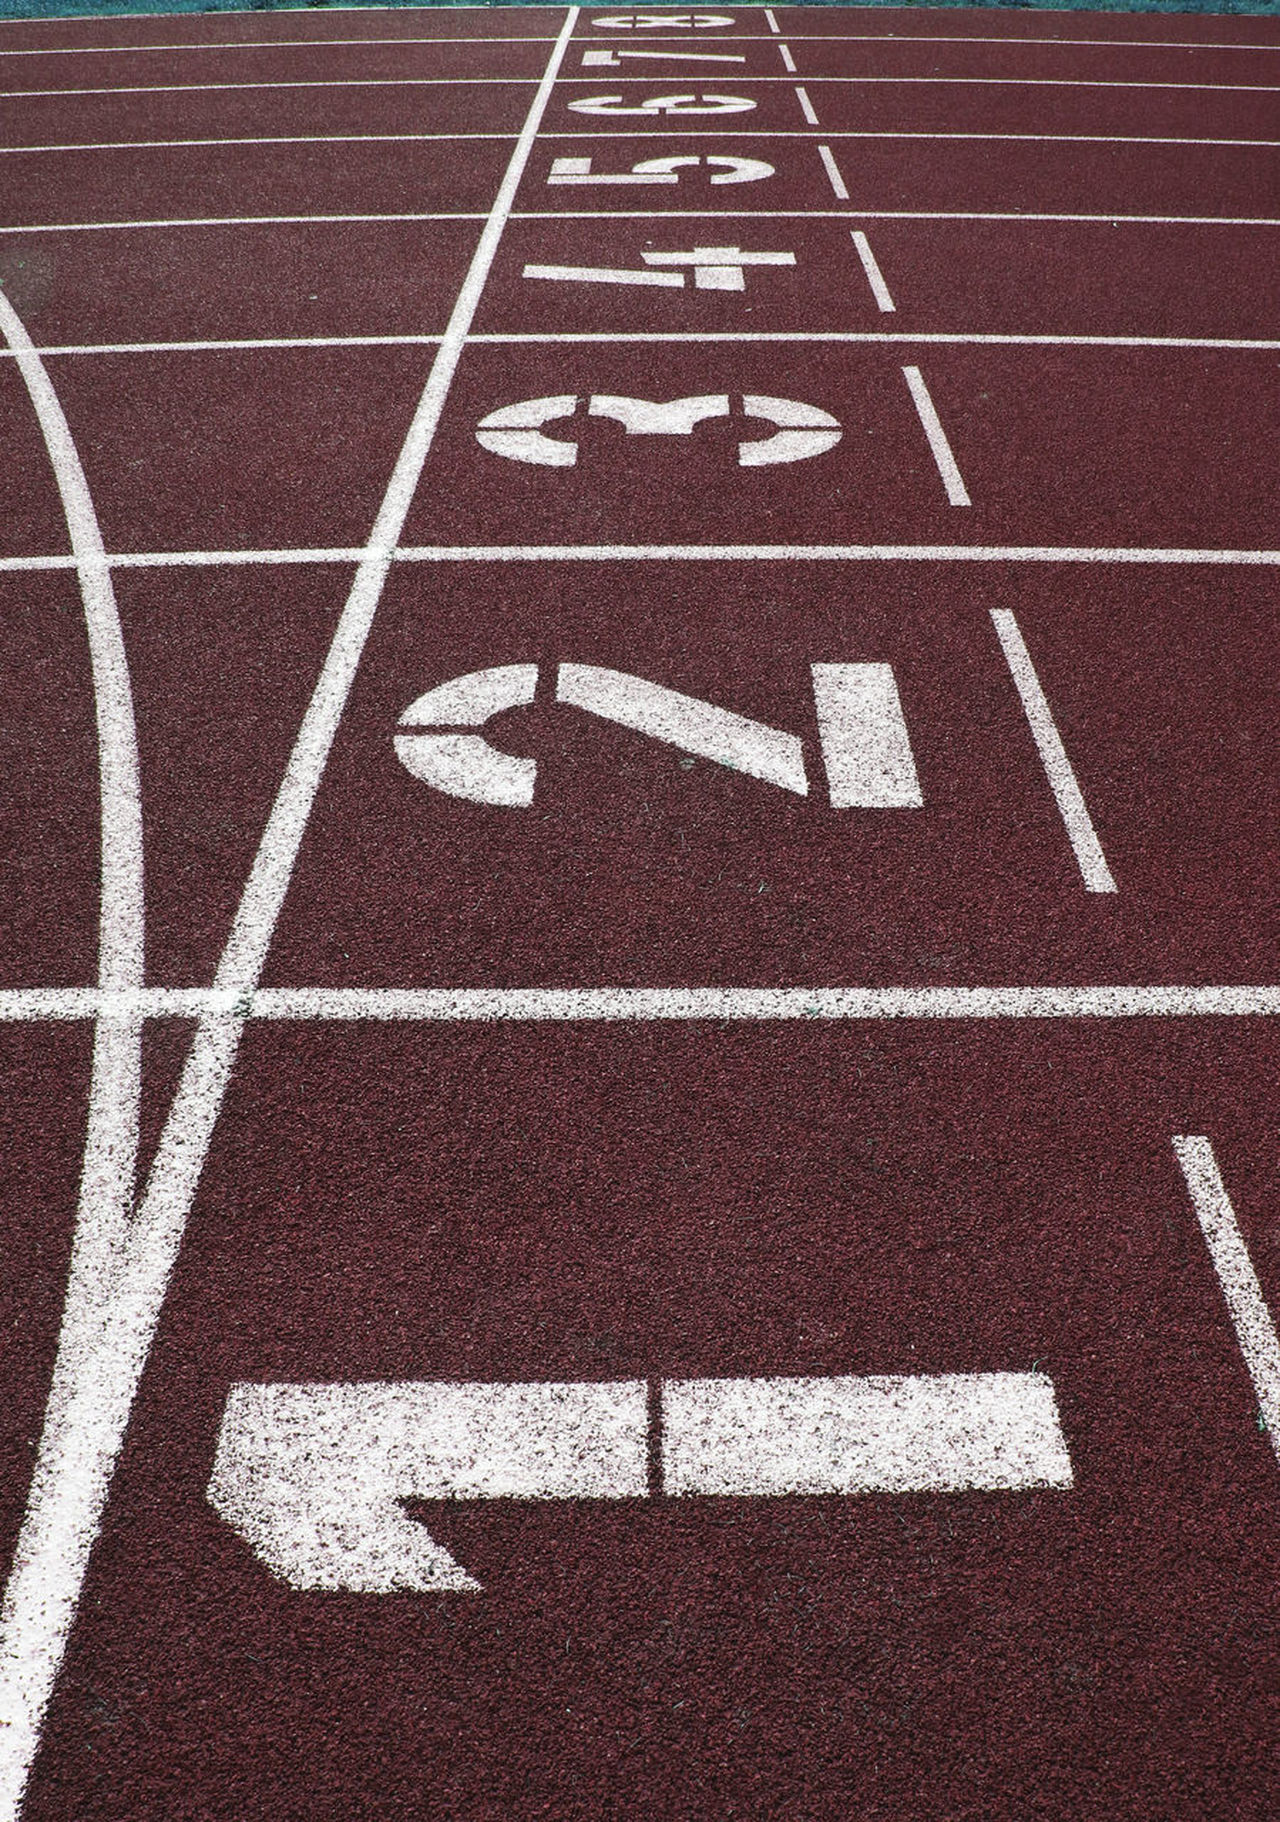 Track, Athletics, Track and field Close-up Competition Competitive Sport Day Exercising Finish Line  No People Number Outdoors Playing Field Running Track Sport Sports Race Sports Track Sprinting Stadium Starting Line Track And Field Track And Field Event Track And Field Stadium Track Event